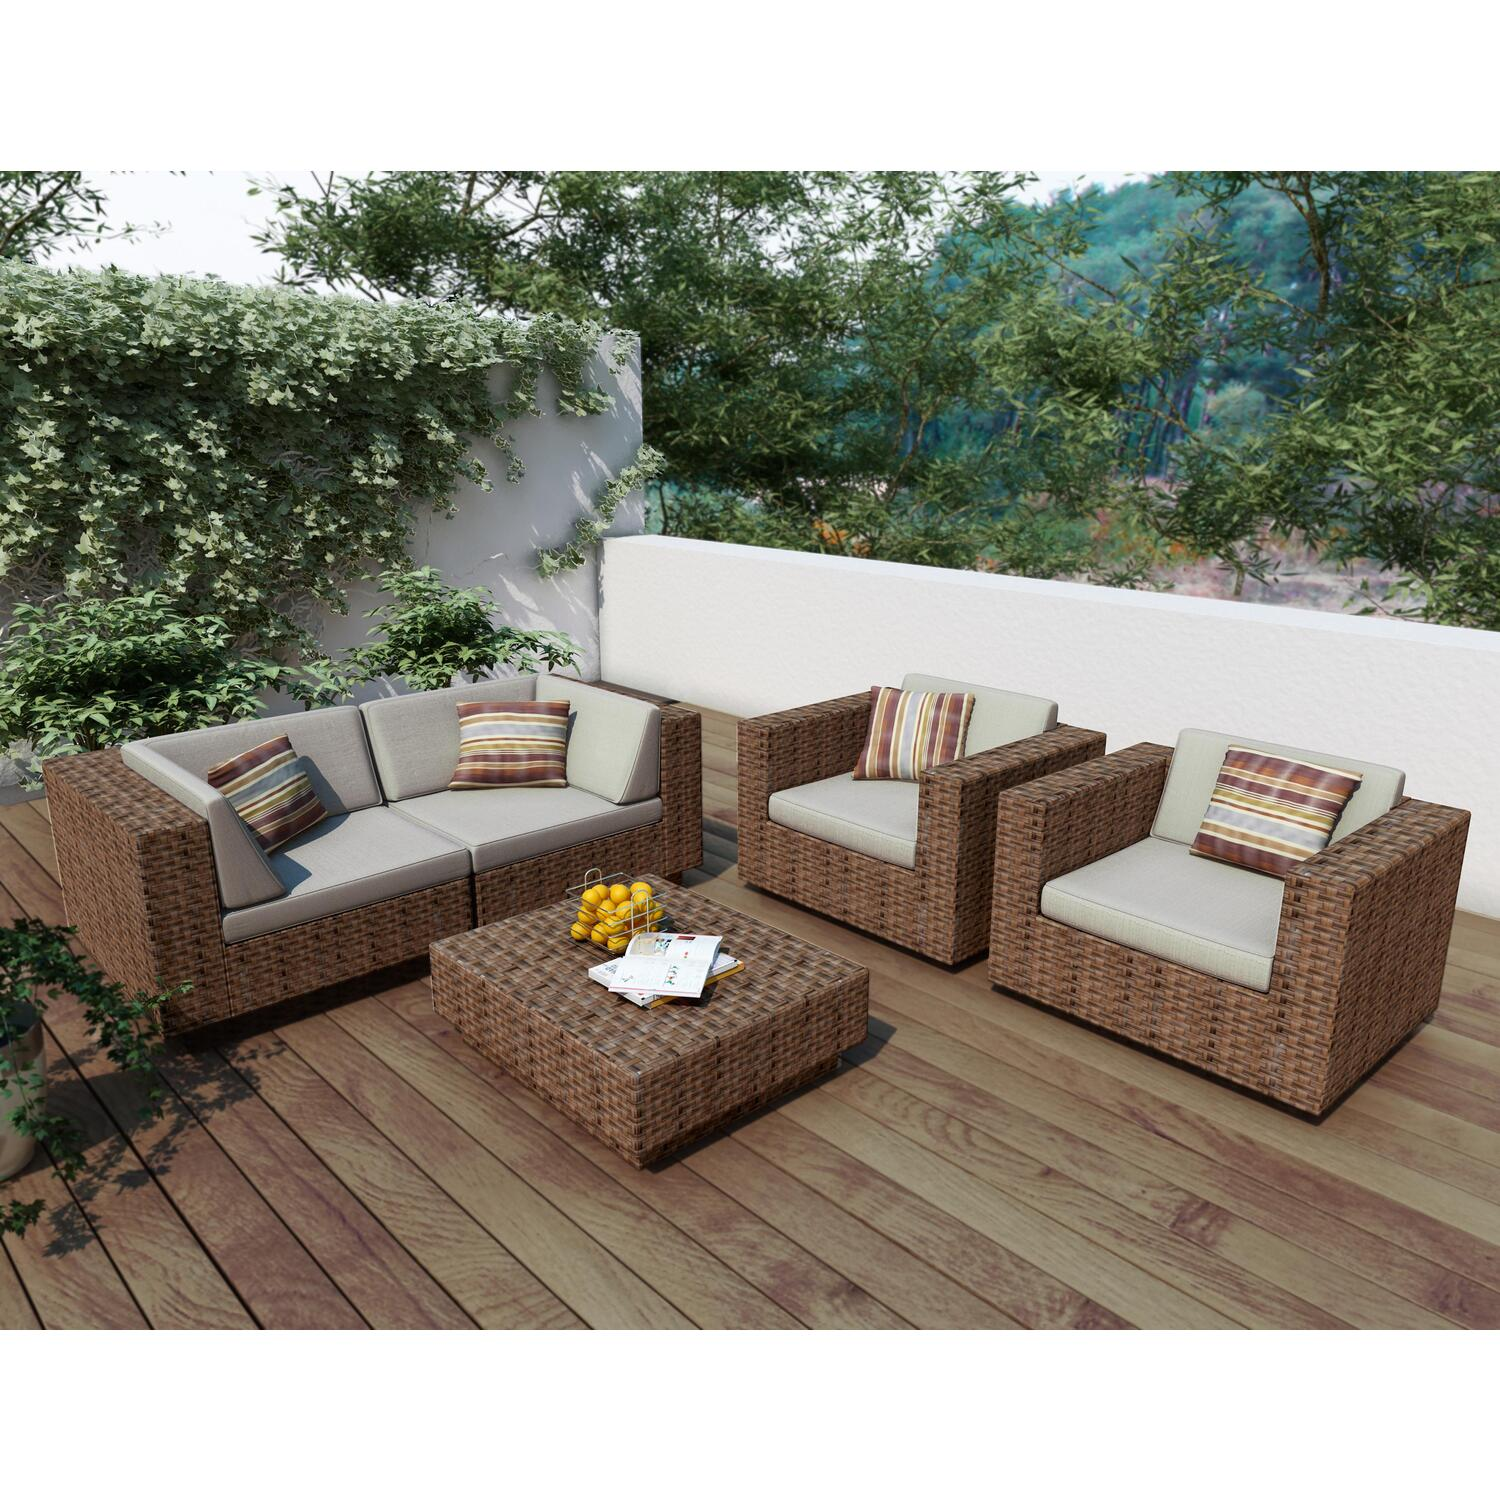 Park terrace 5 piece sofa patio set ojcommerce for Outdoor patio couch set